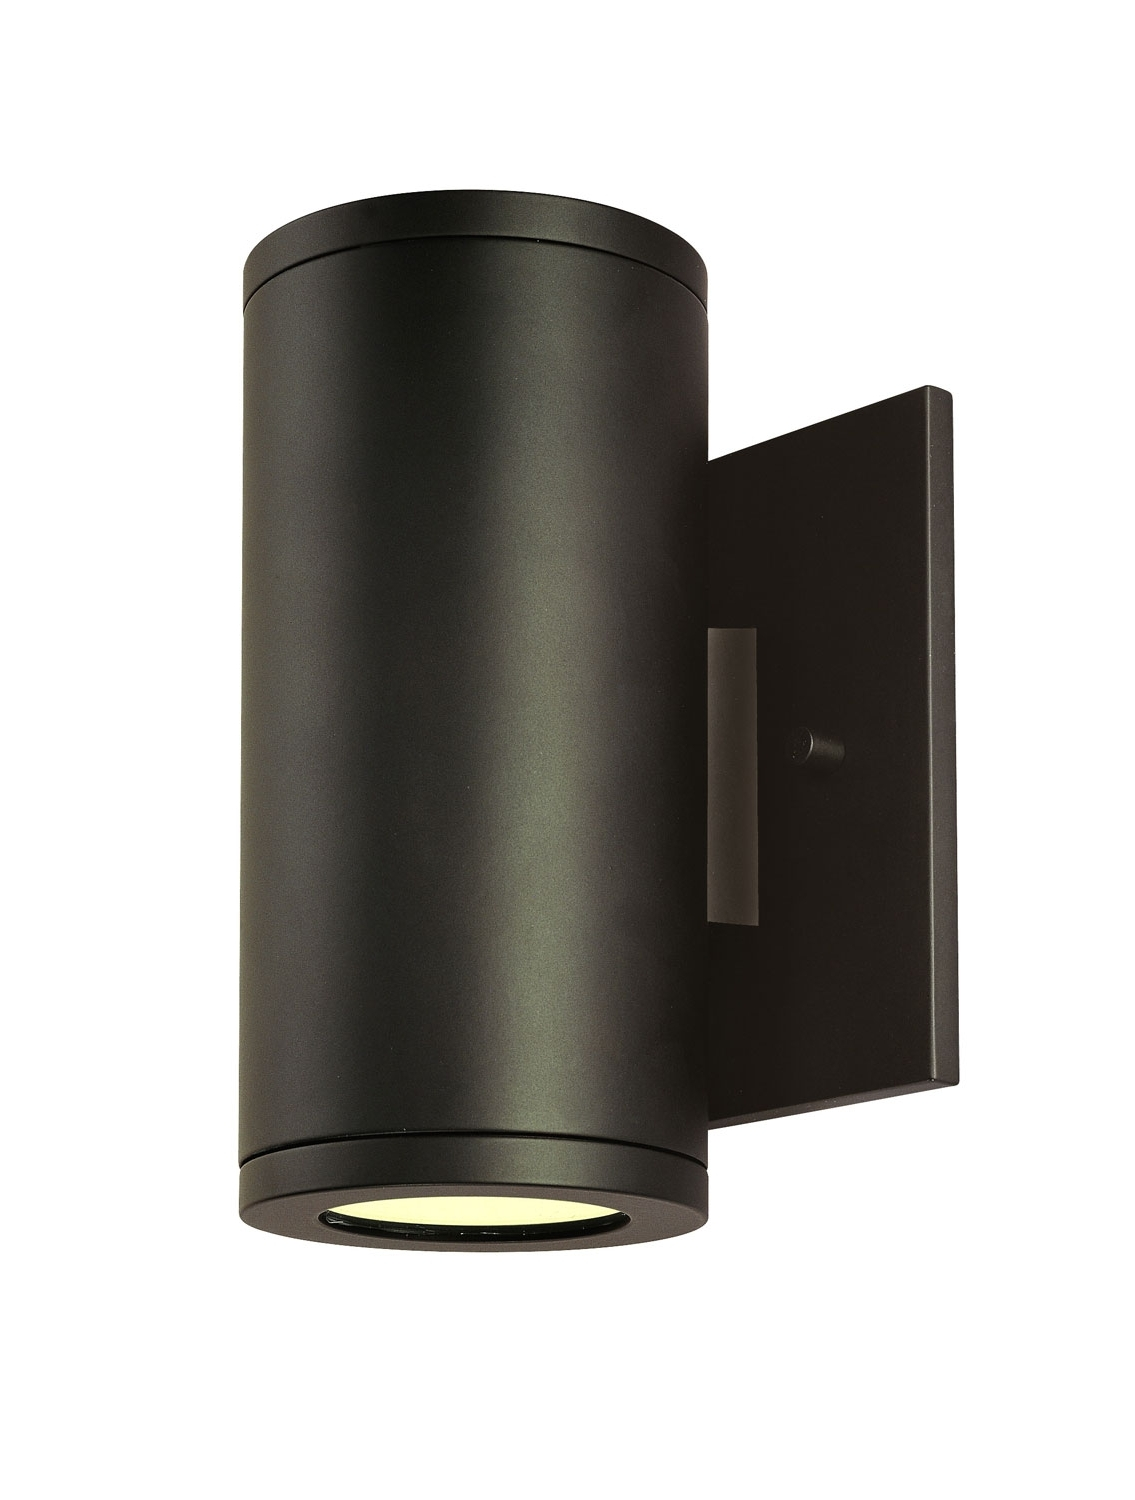 Light : Dark Wall Mounted Outdoor Lighting Black Simple Ideas For Well Known Outdoor Wall Hung Lights (View 7 of 20)